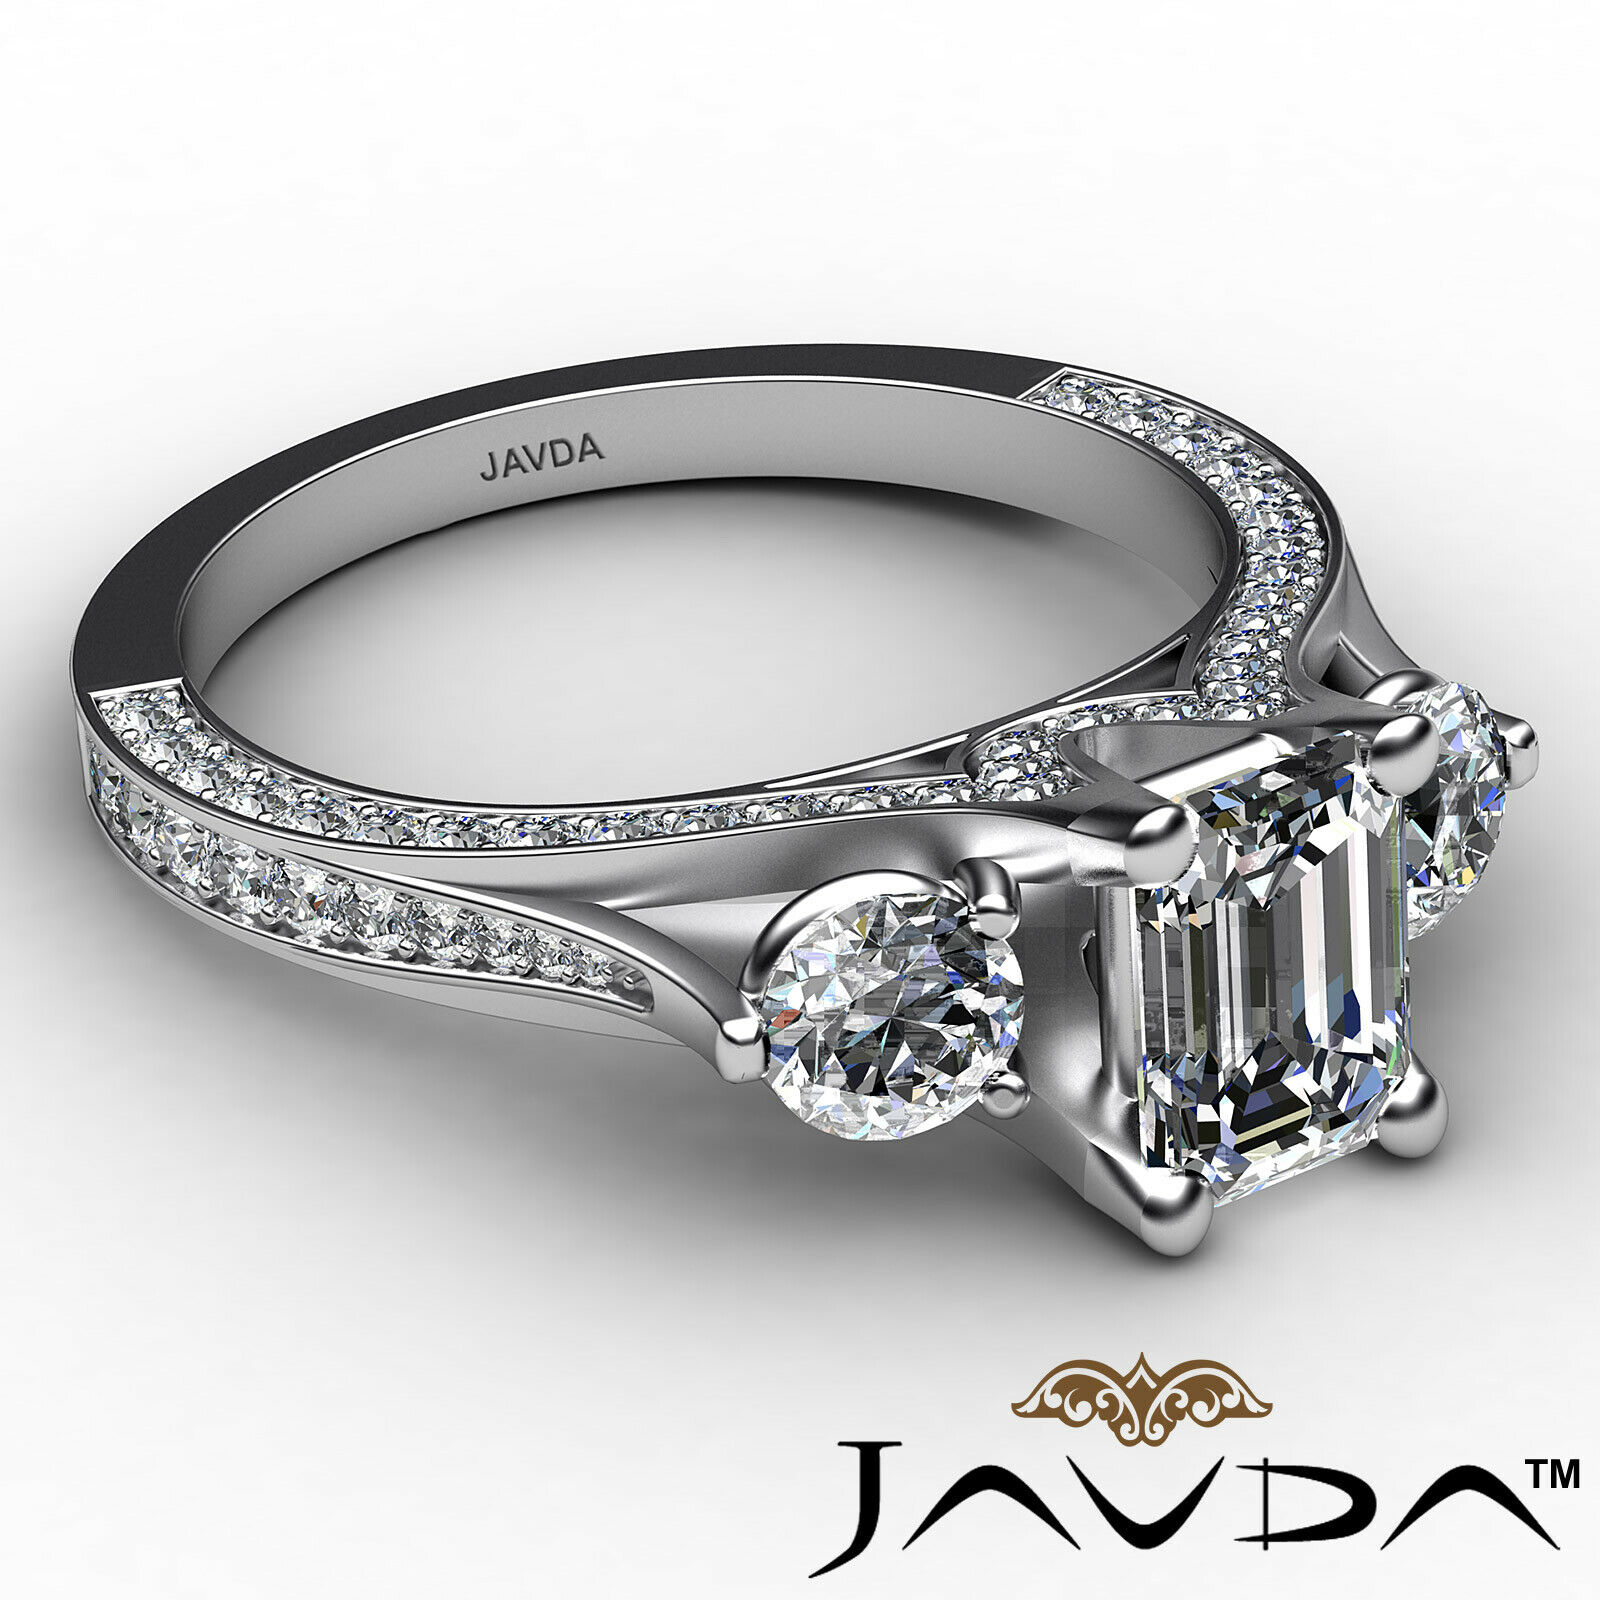 3stone Emerald Diamond Engagement Ring GIA Certified J Color & VVS1 clarity 2ctw 6